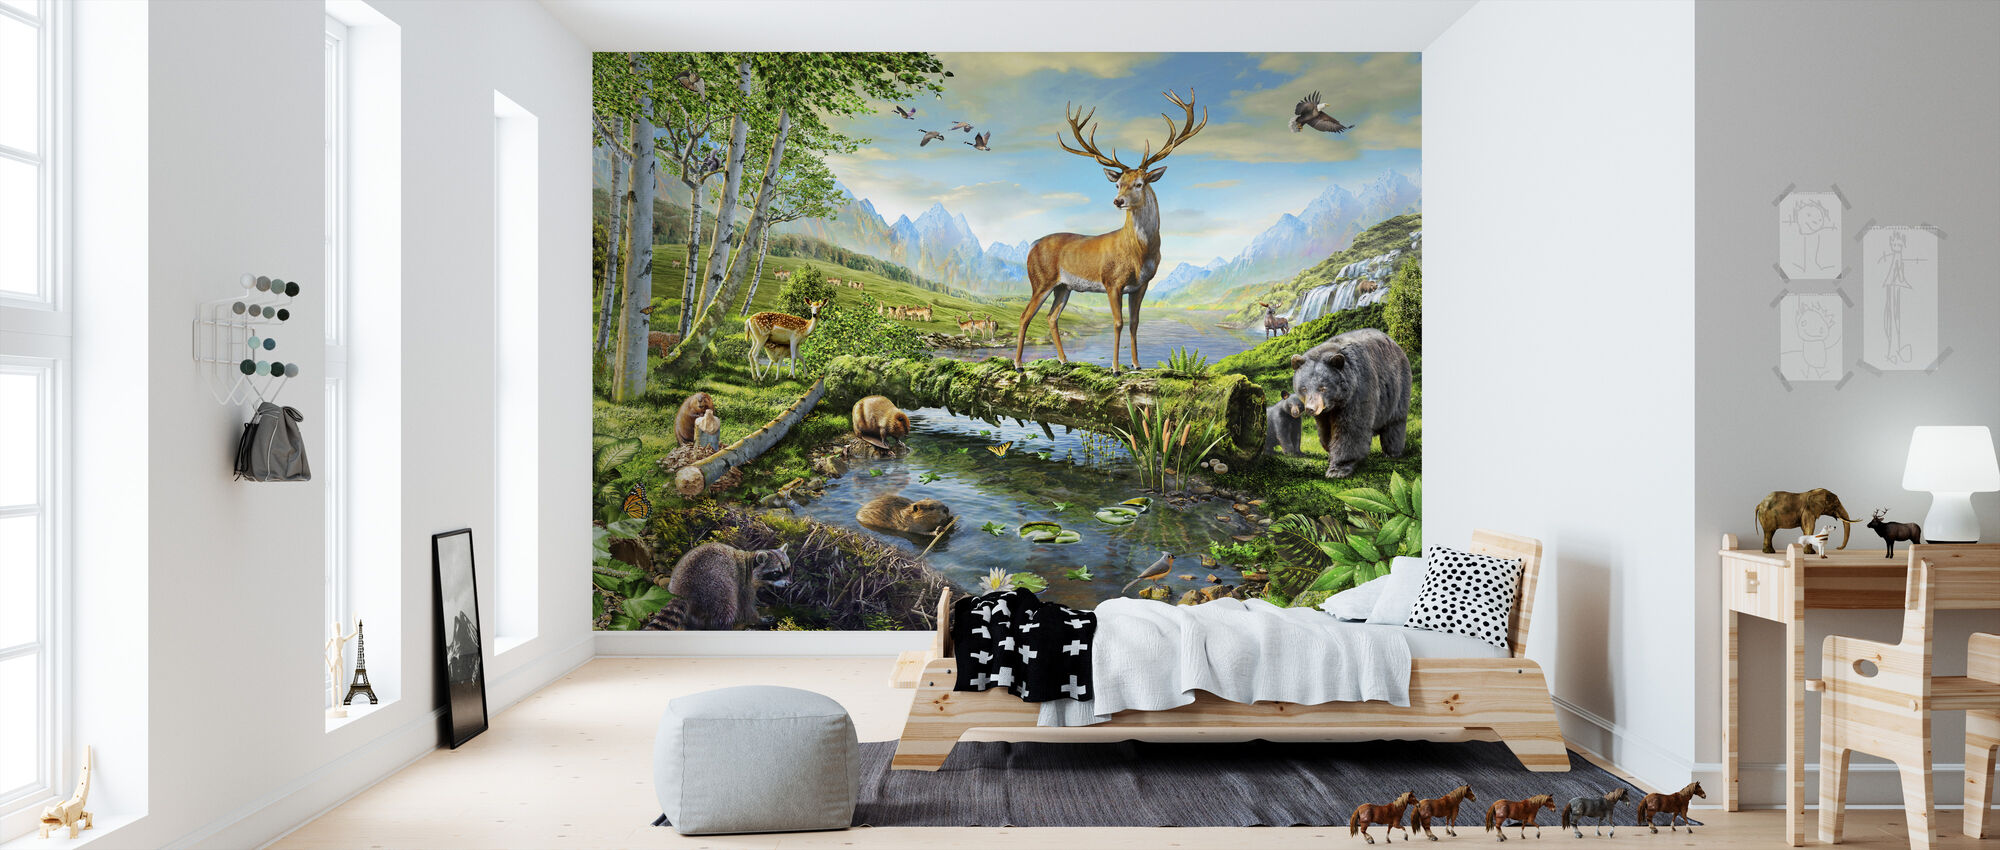 Wildlife Pracht US - Behang - Kinderkamer